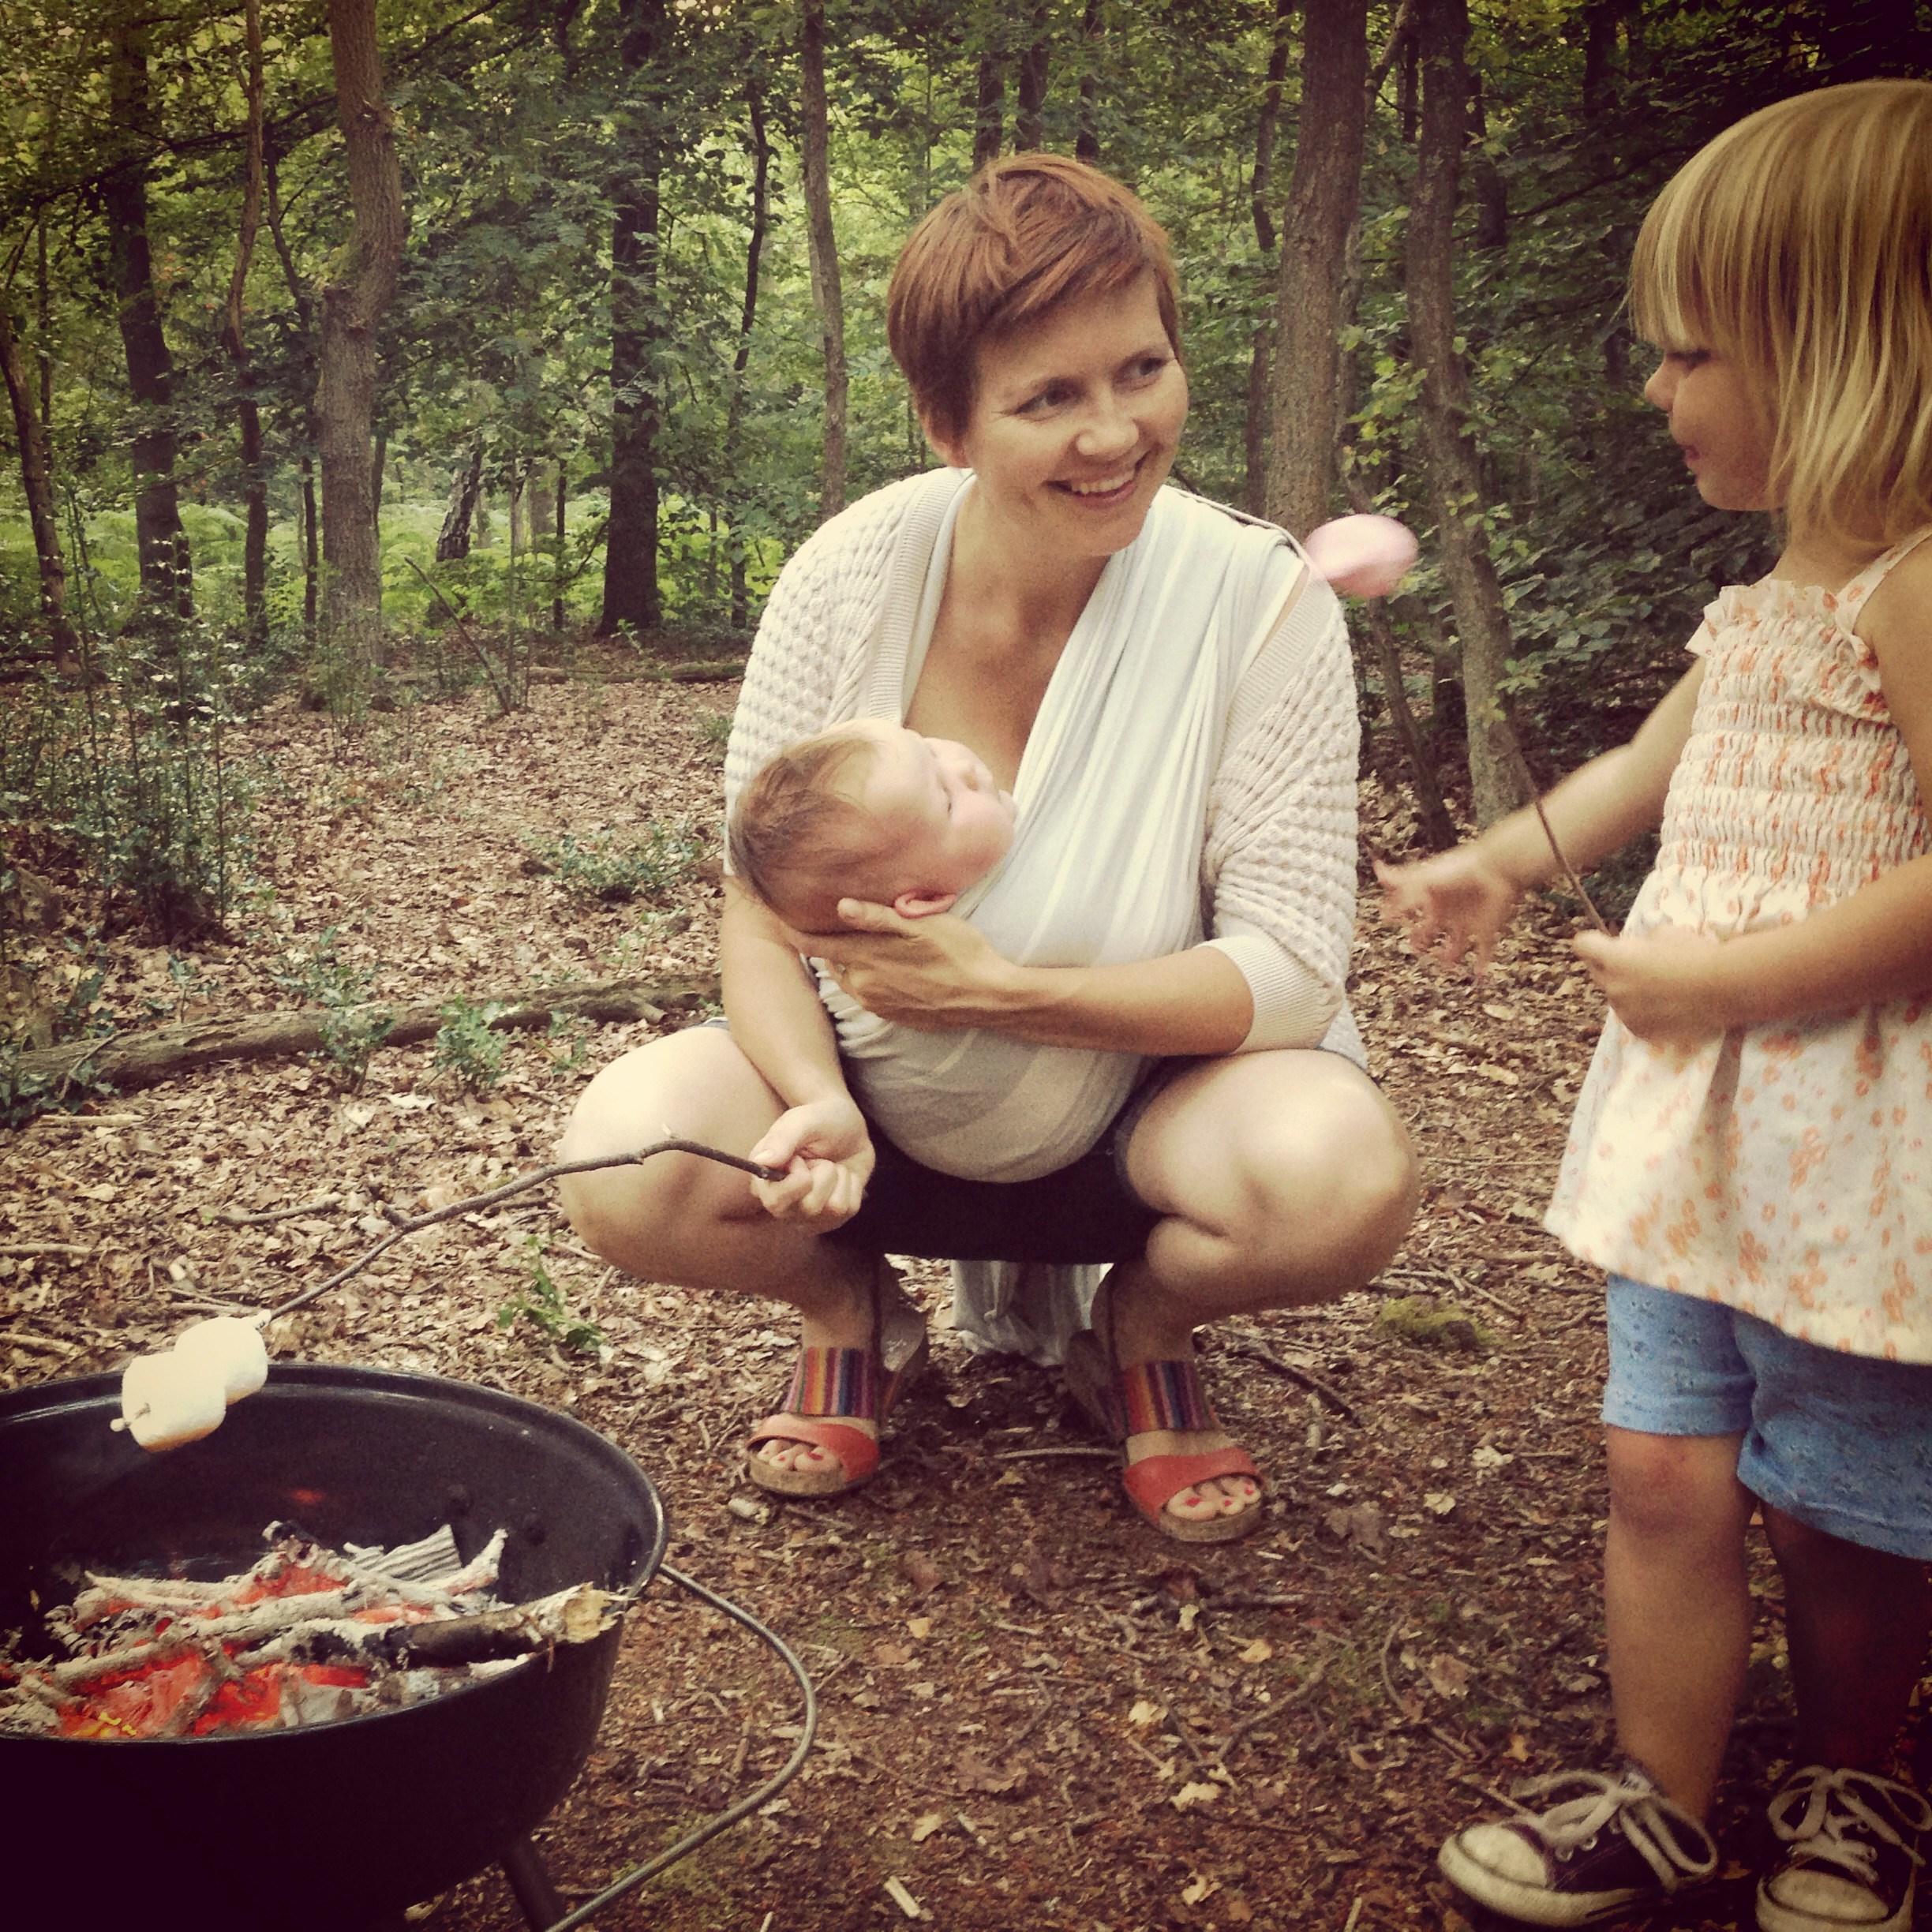 Toasting marshmallows and 300 other ways to have thrifty fun